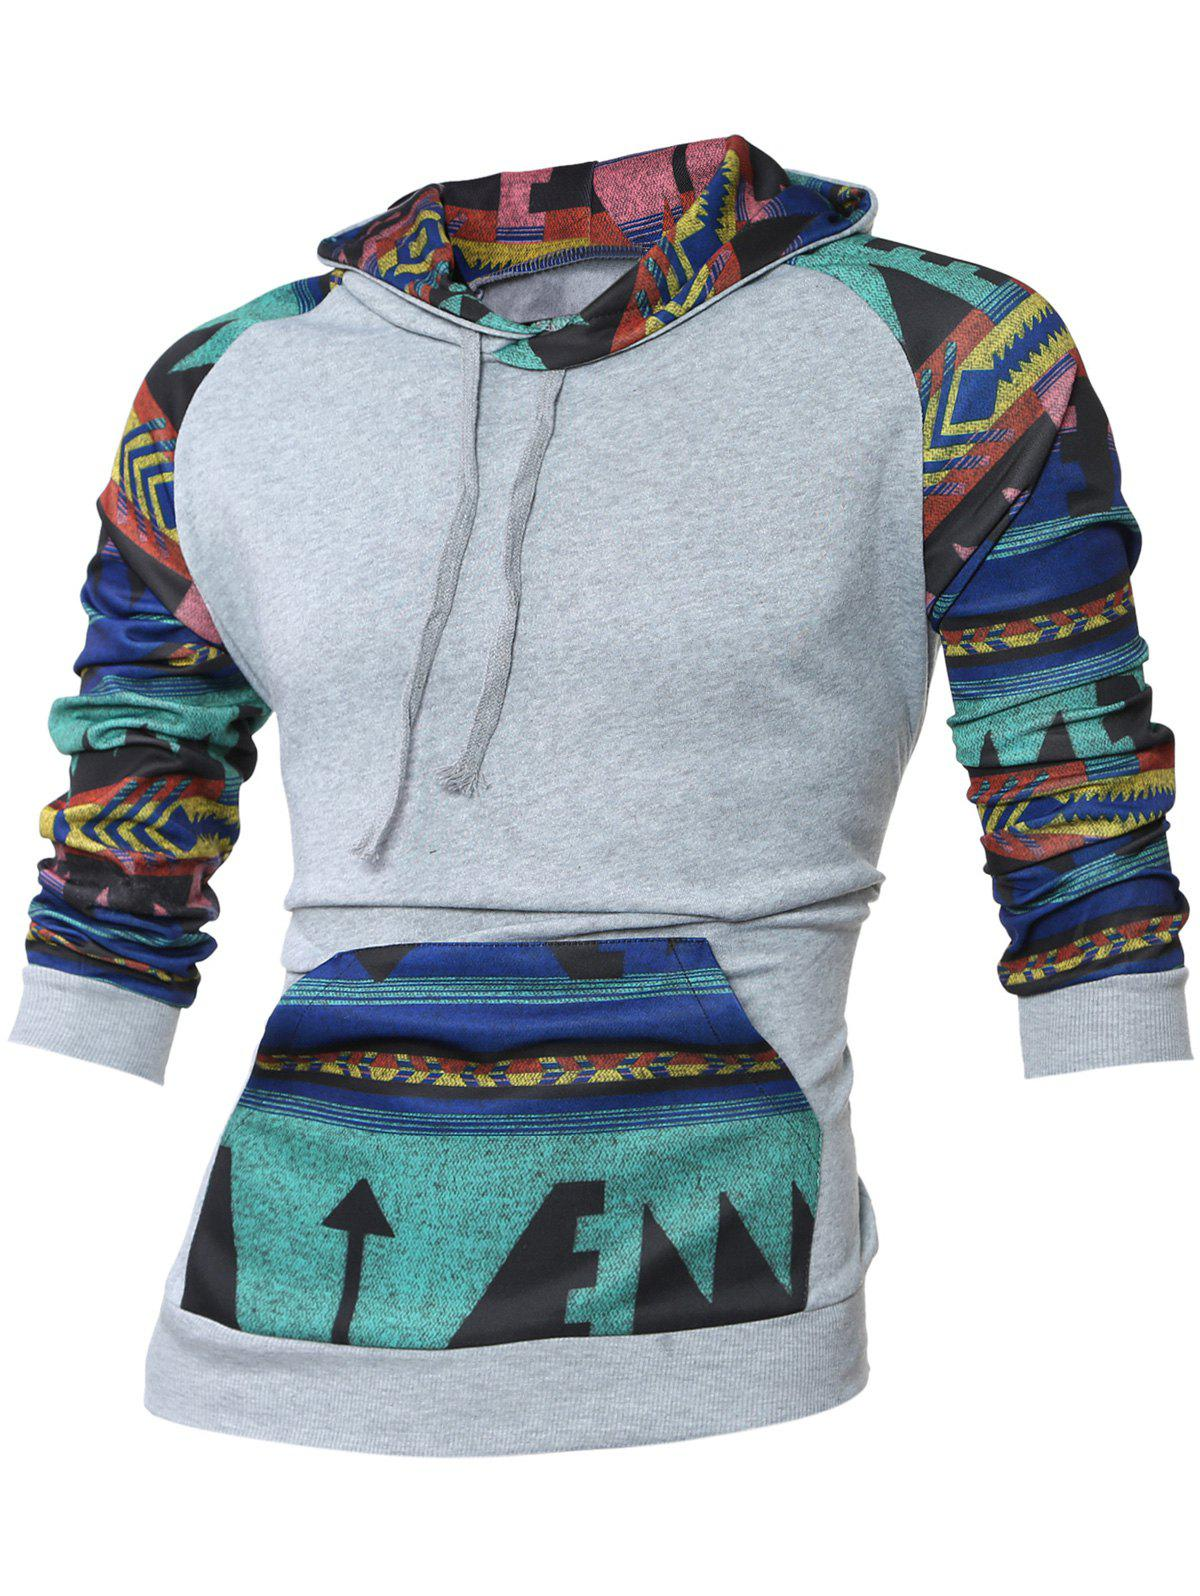 Kangaroo Pocket Raglan Sleeve Tribal Print Hoodie - LIGHT GRAY 2XL